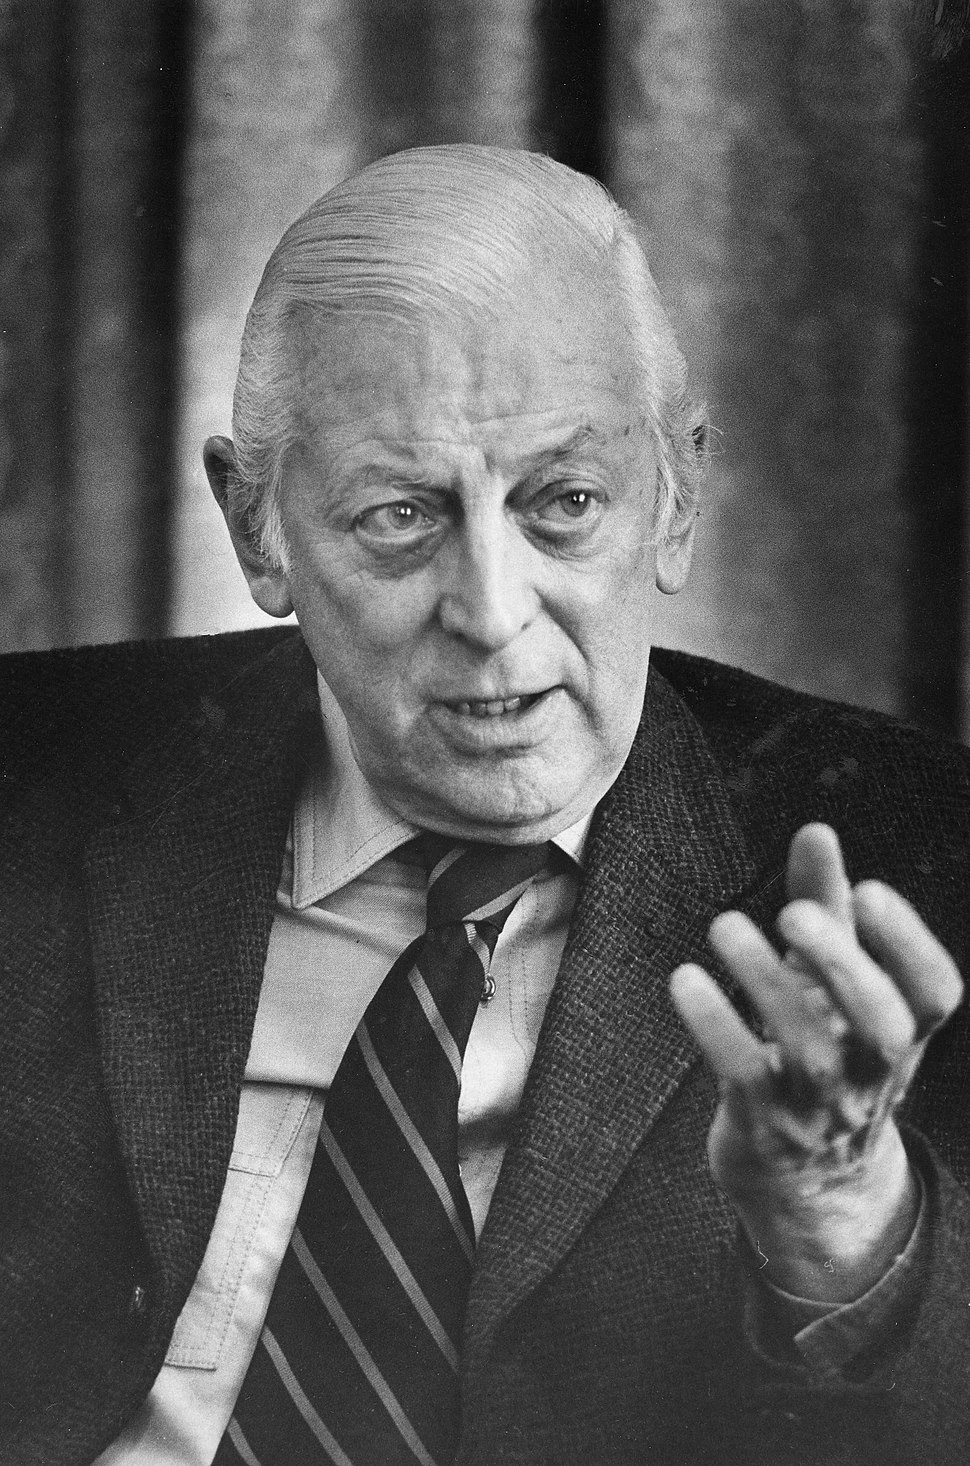 Alistair Cooke, head-and-shoulders portrait, facing front, gesturing with left hand, during interview, March 18, 1974